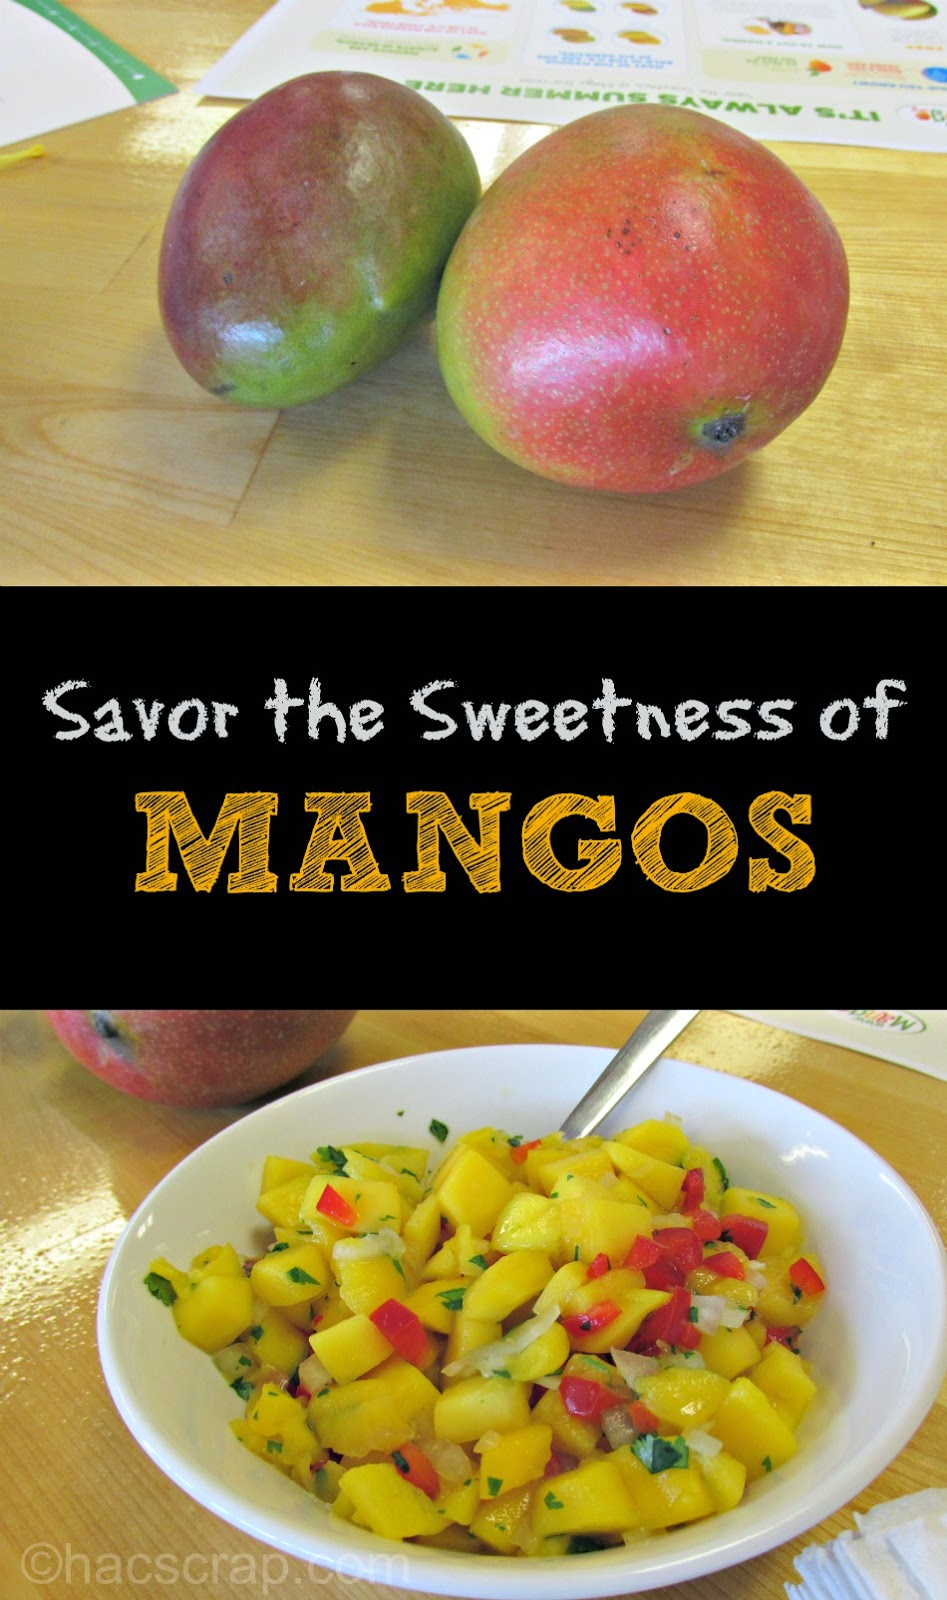 Enjoy Mangos all year round with tips for selecting, storing and eating #MakeitMango